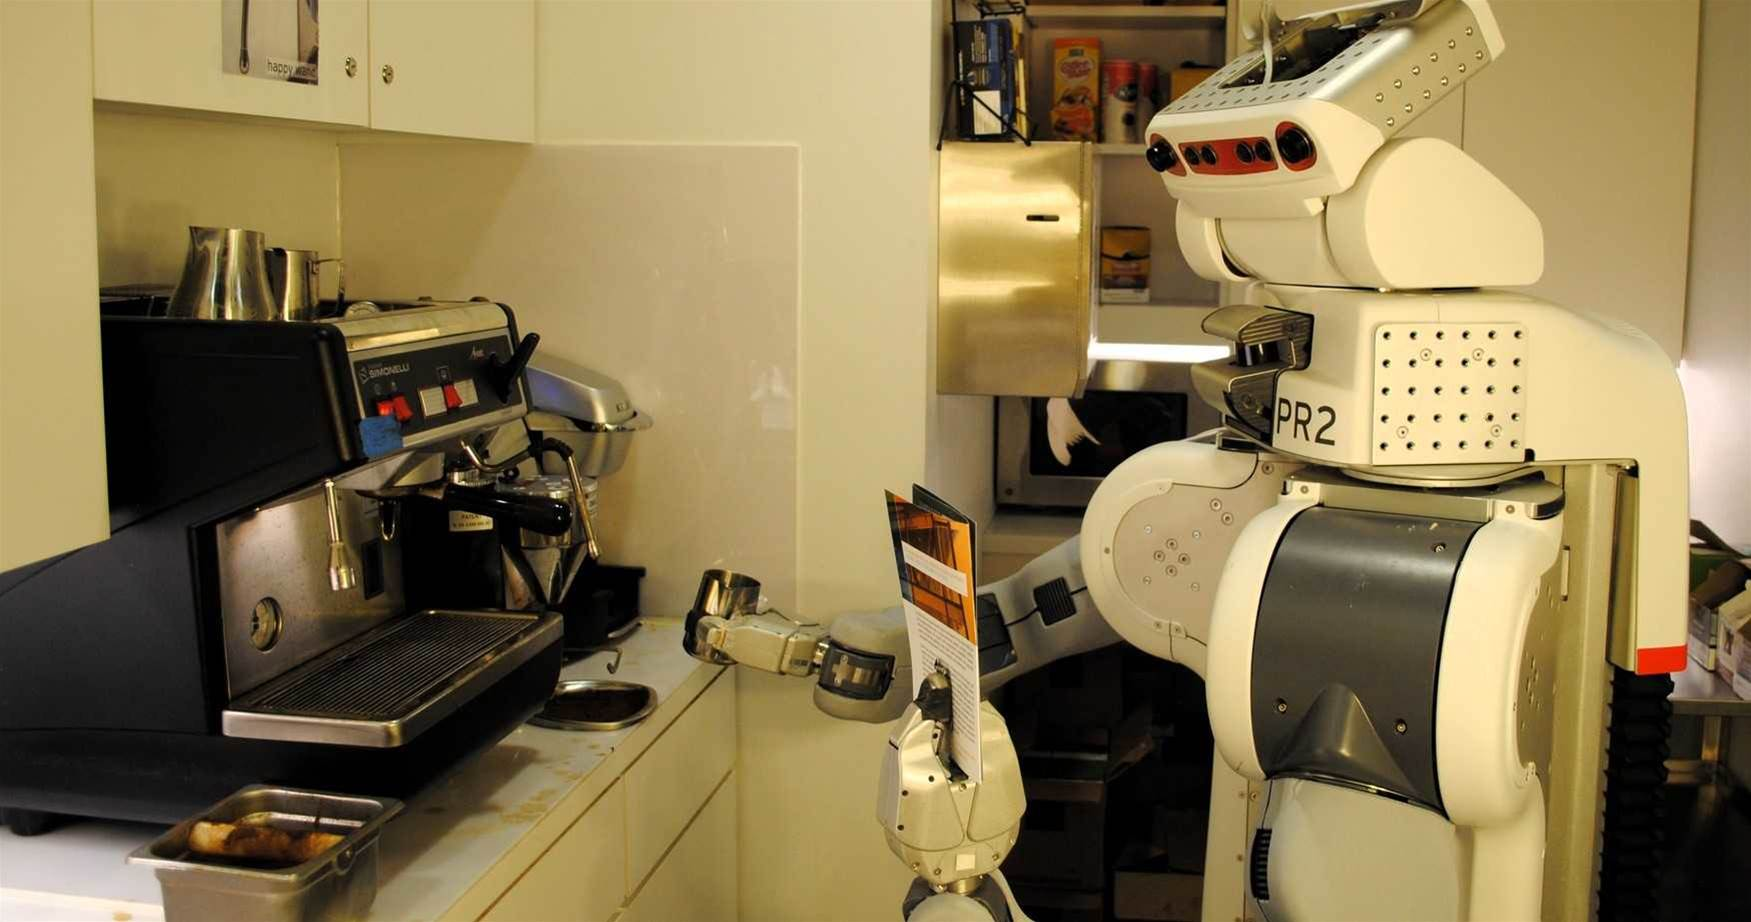 Robobarista Can Learn How To Operate Your Coffee Machine